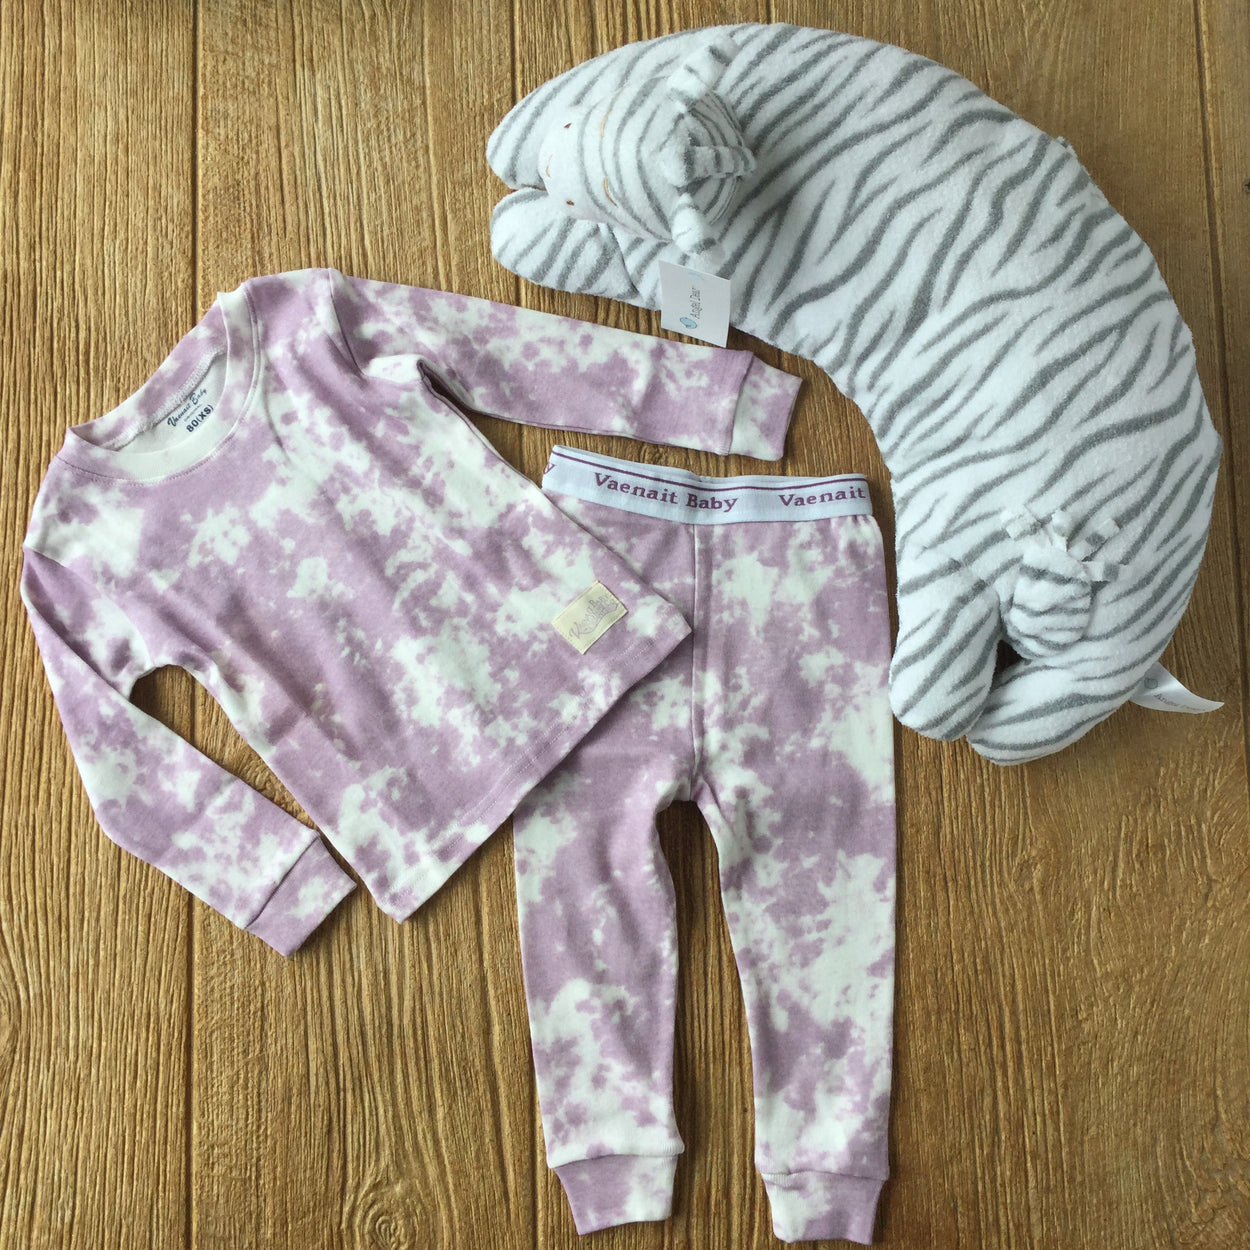 Girl's Pajamas and Lounge Wear